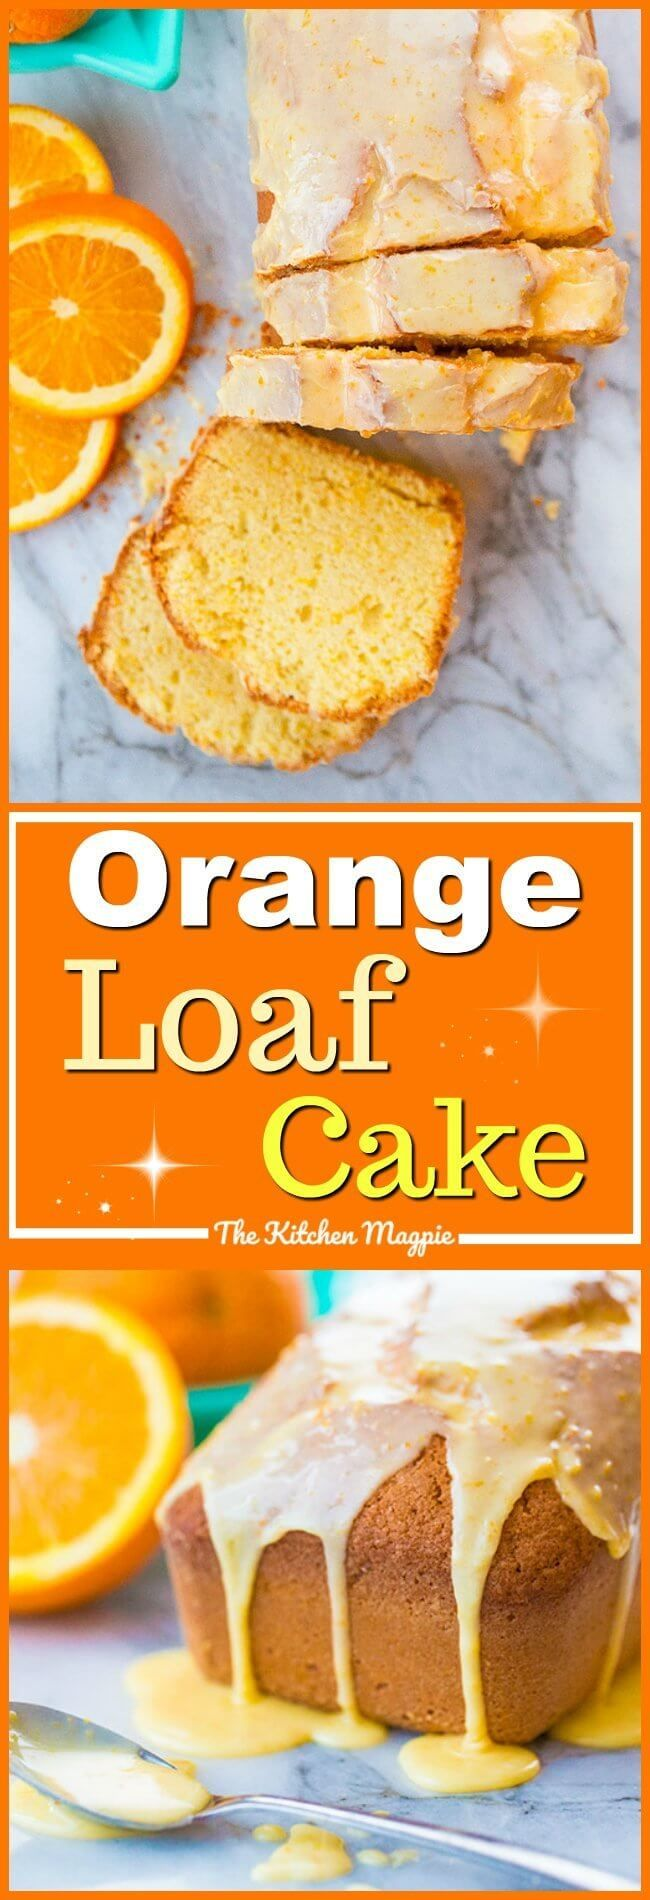 I love a good loaf cake and my amazing orange loaf cake is no exception! The orange icing glaze on top makes this perfectly sweet and tangy!